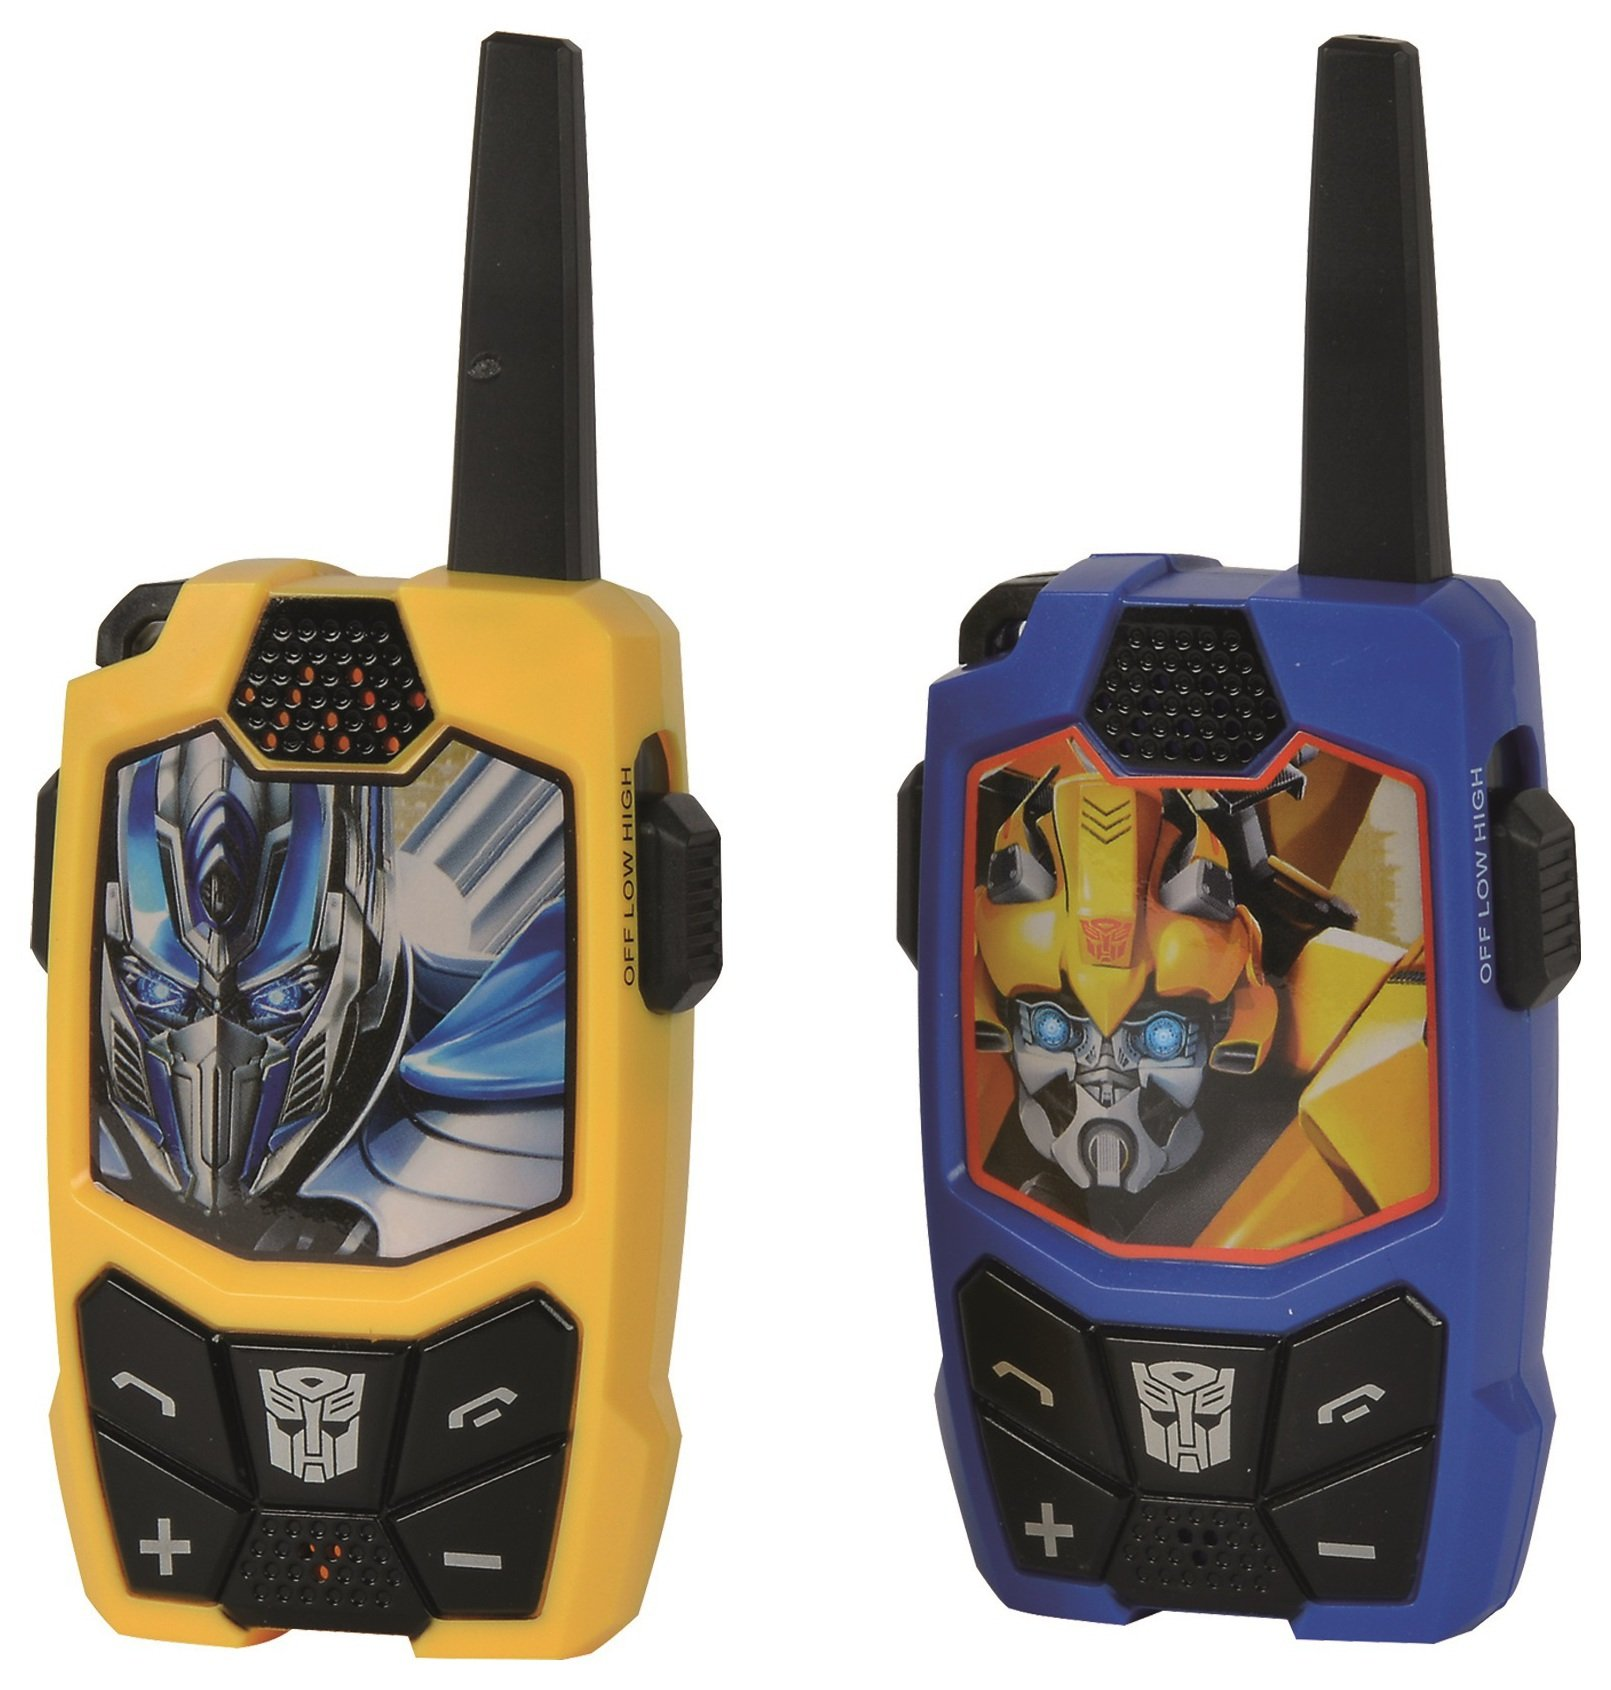 Image of Transformers: The Last Knight Walkie Talkies